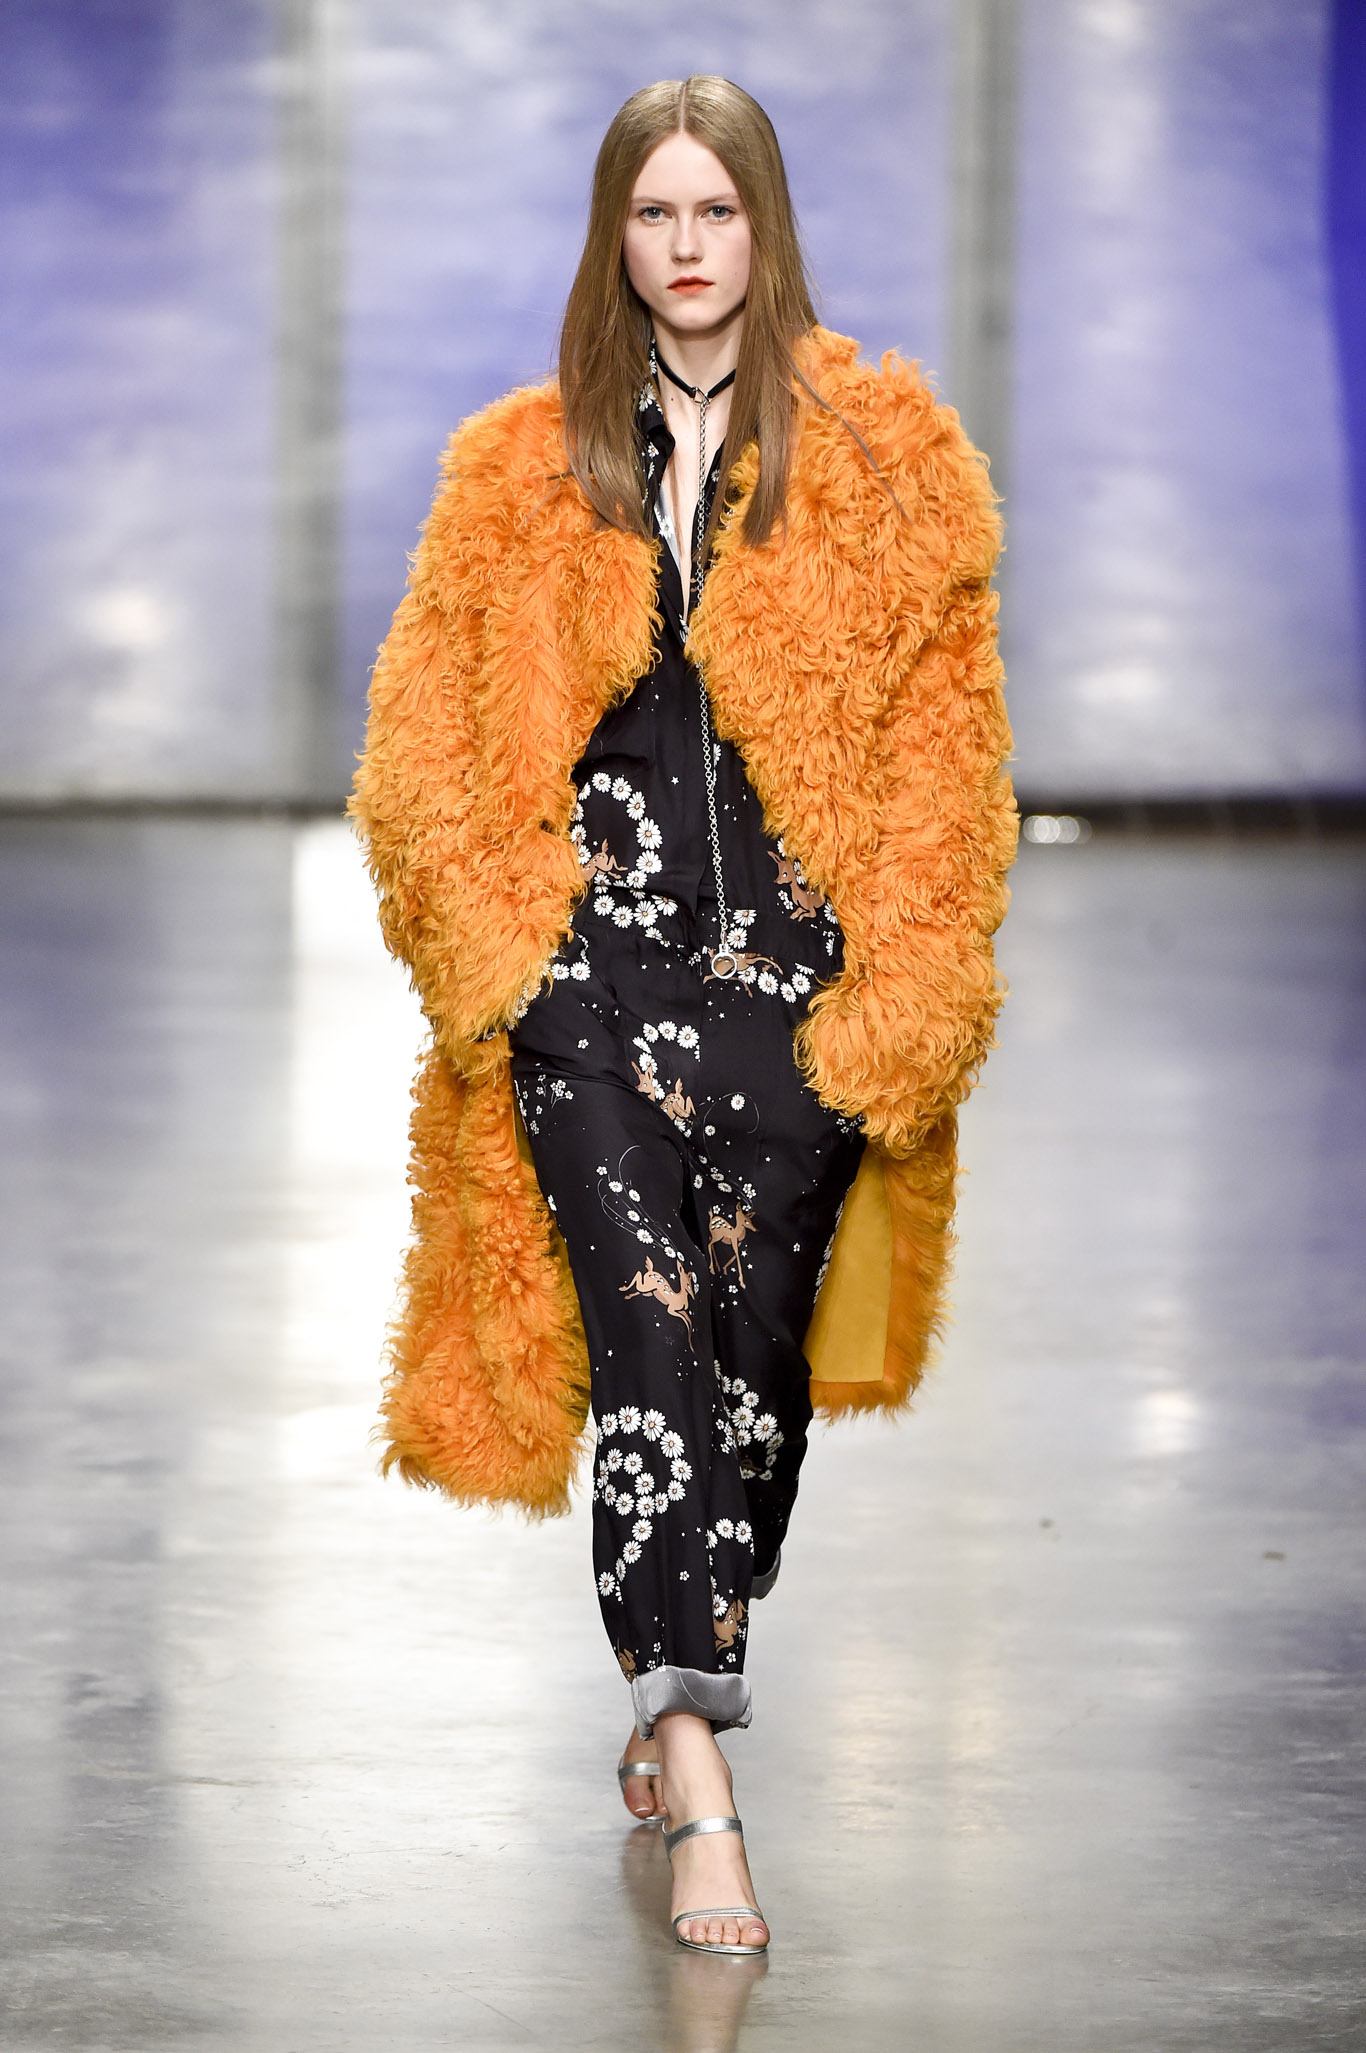 Topshop Unique RTW Fall 2017